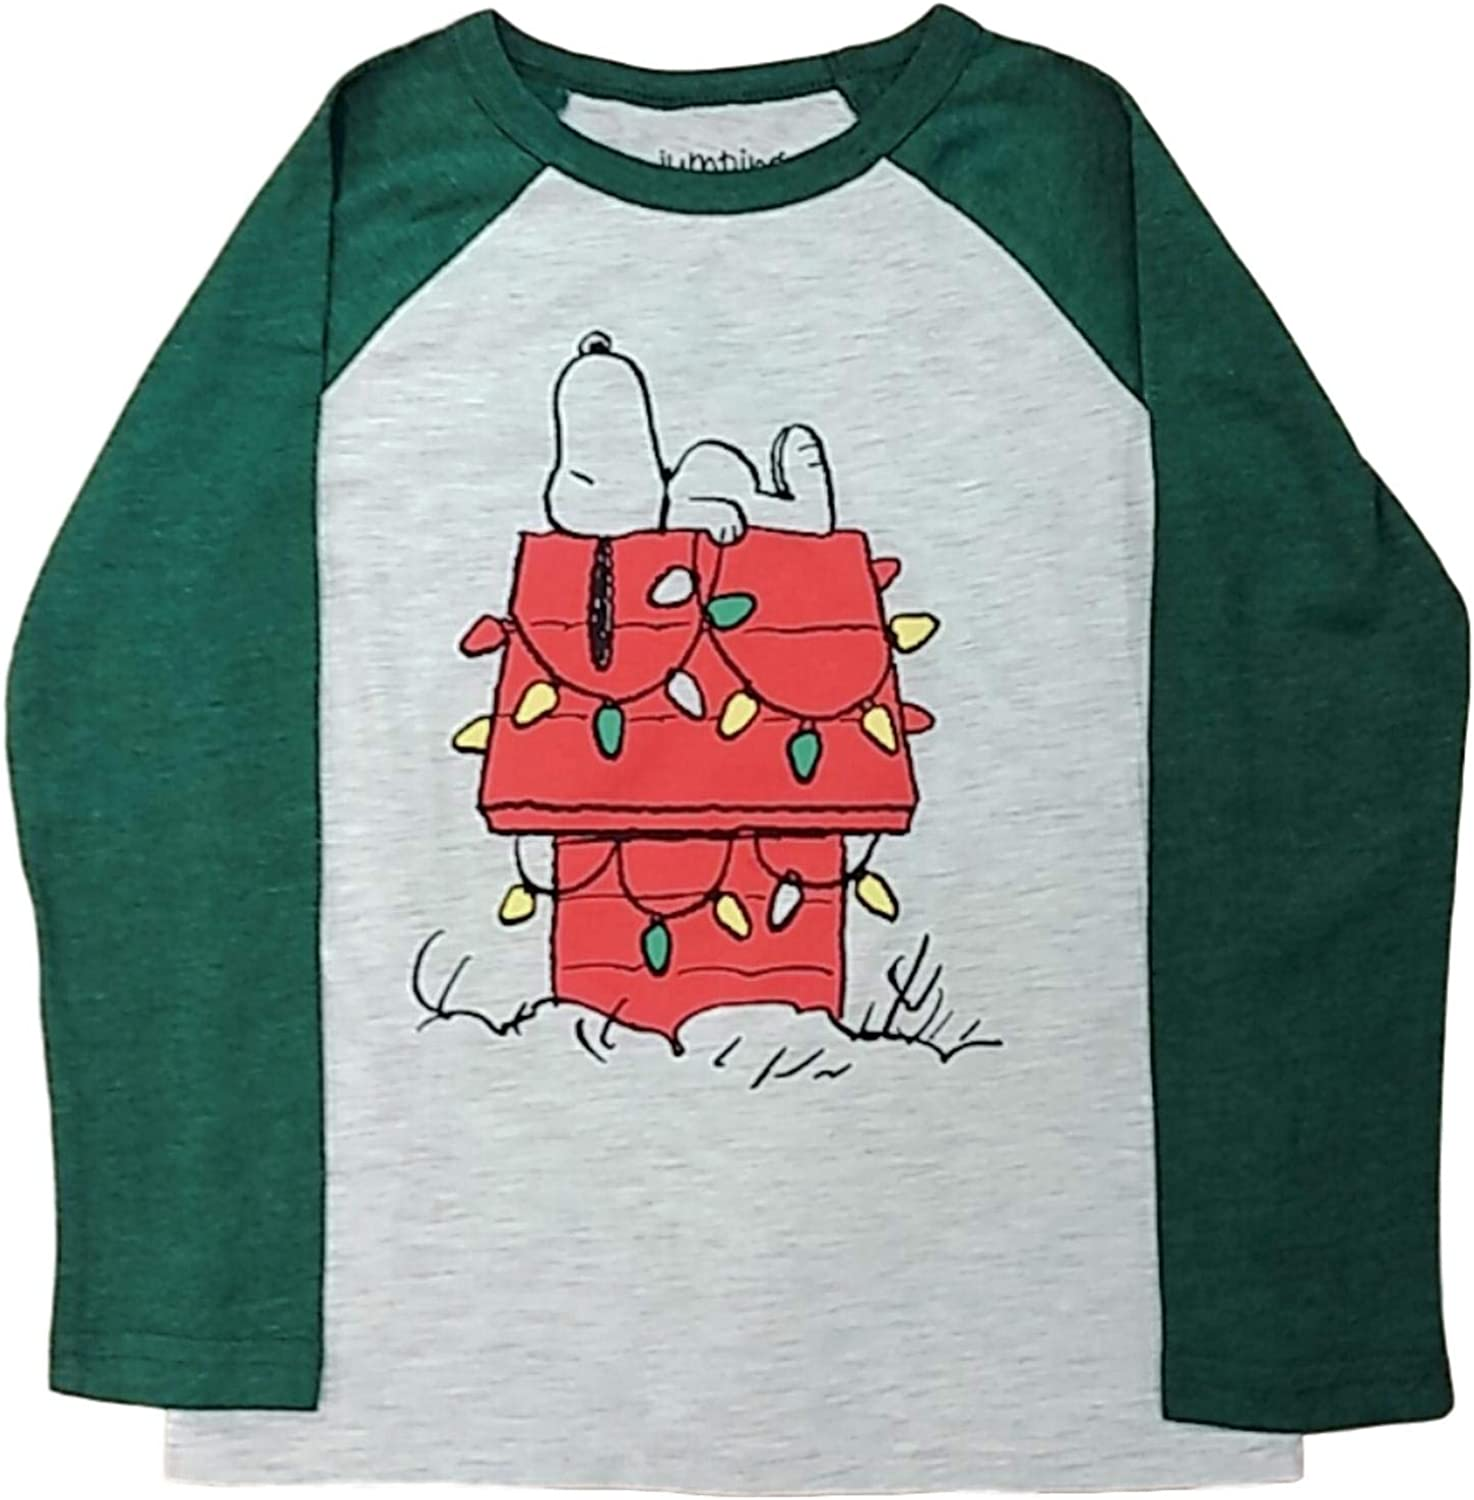 Boys 4-12 Jumping Beans Snoopy Holiday Doghouse Long Sleeve Graphic Raglan Tee, Beige/Dark Green